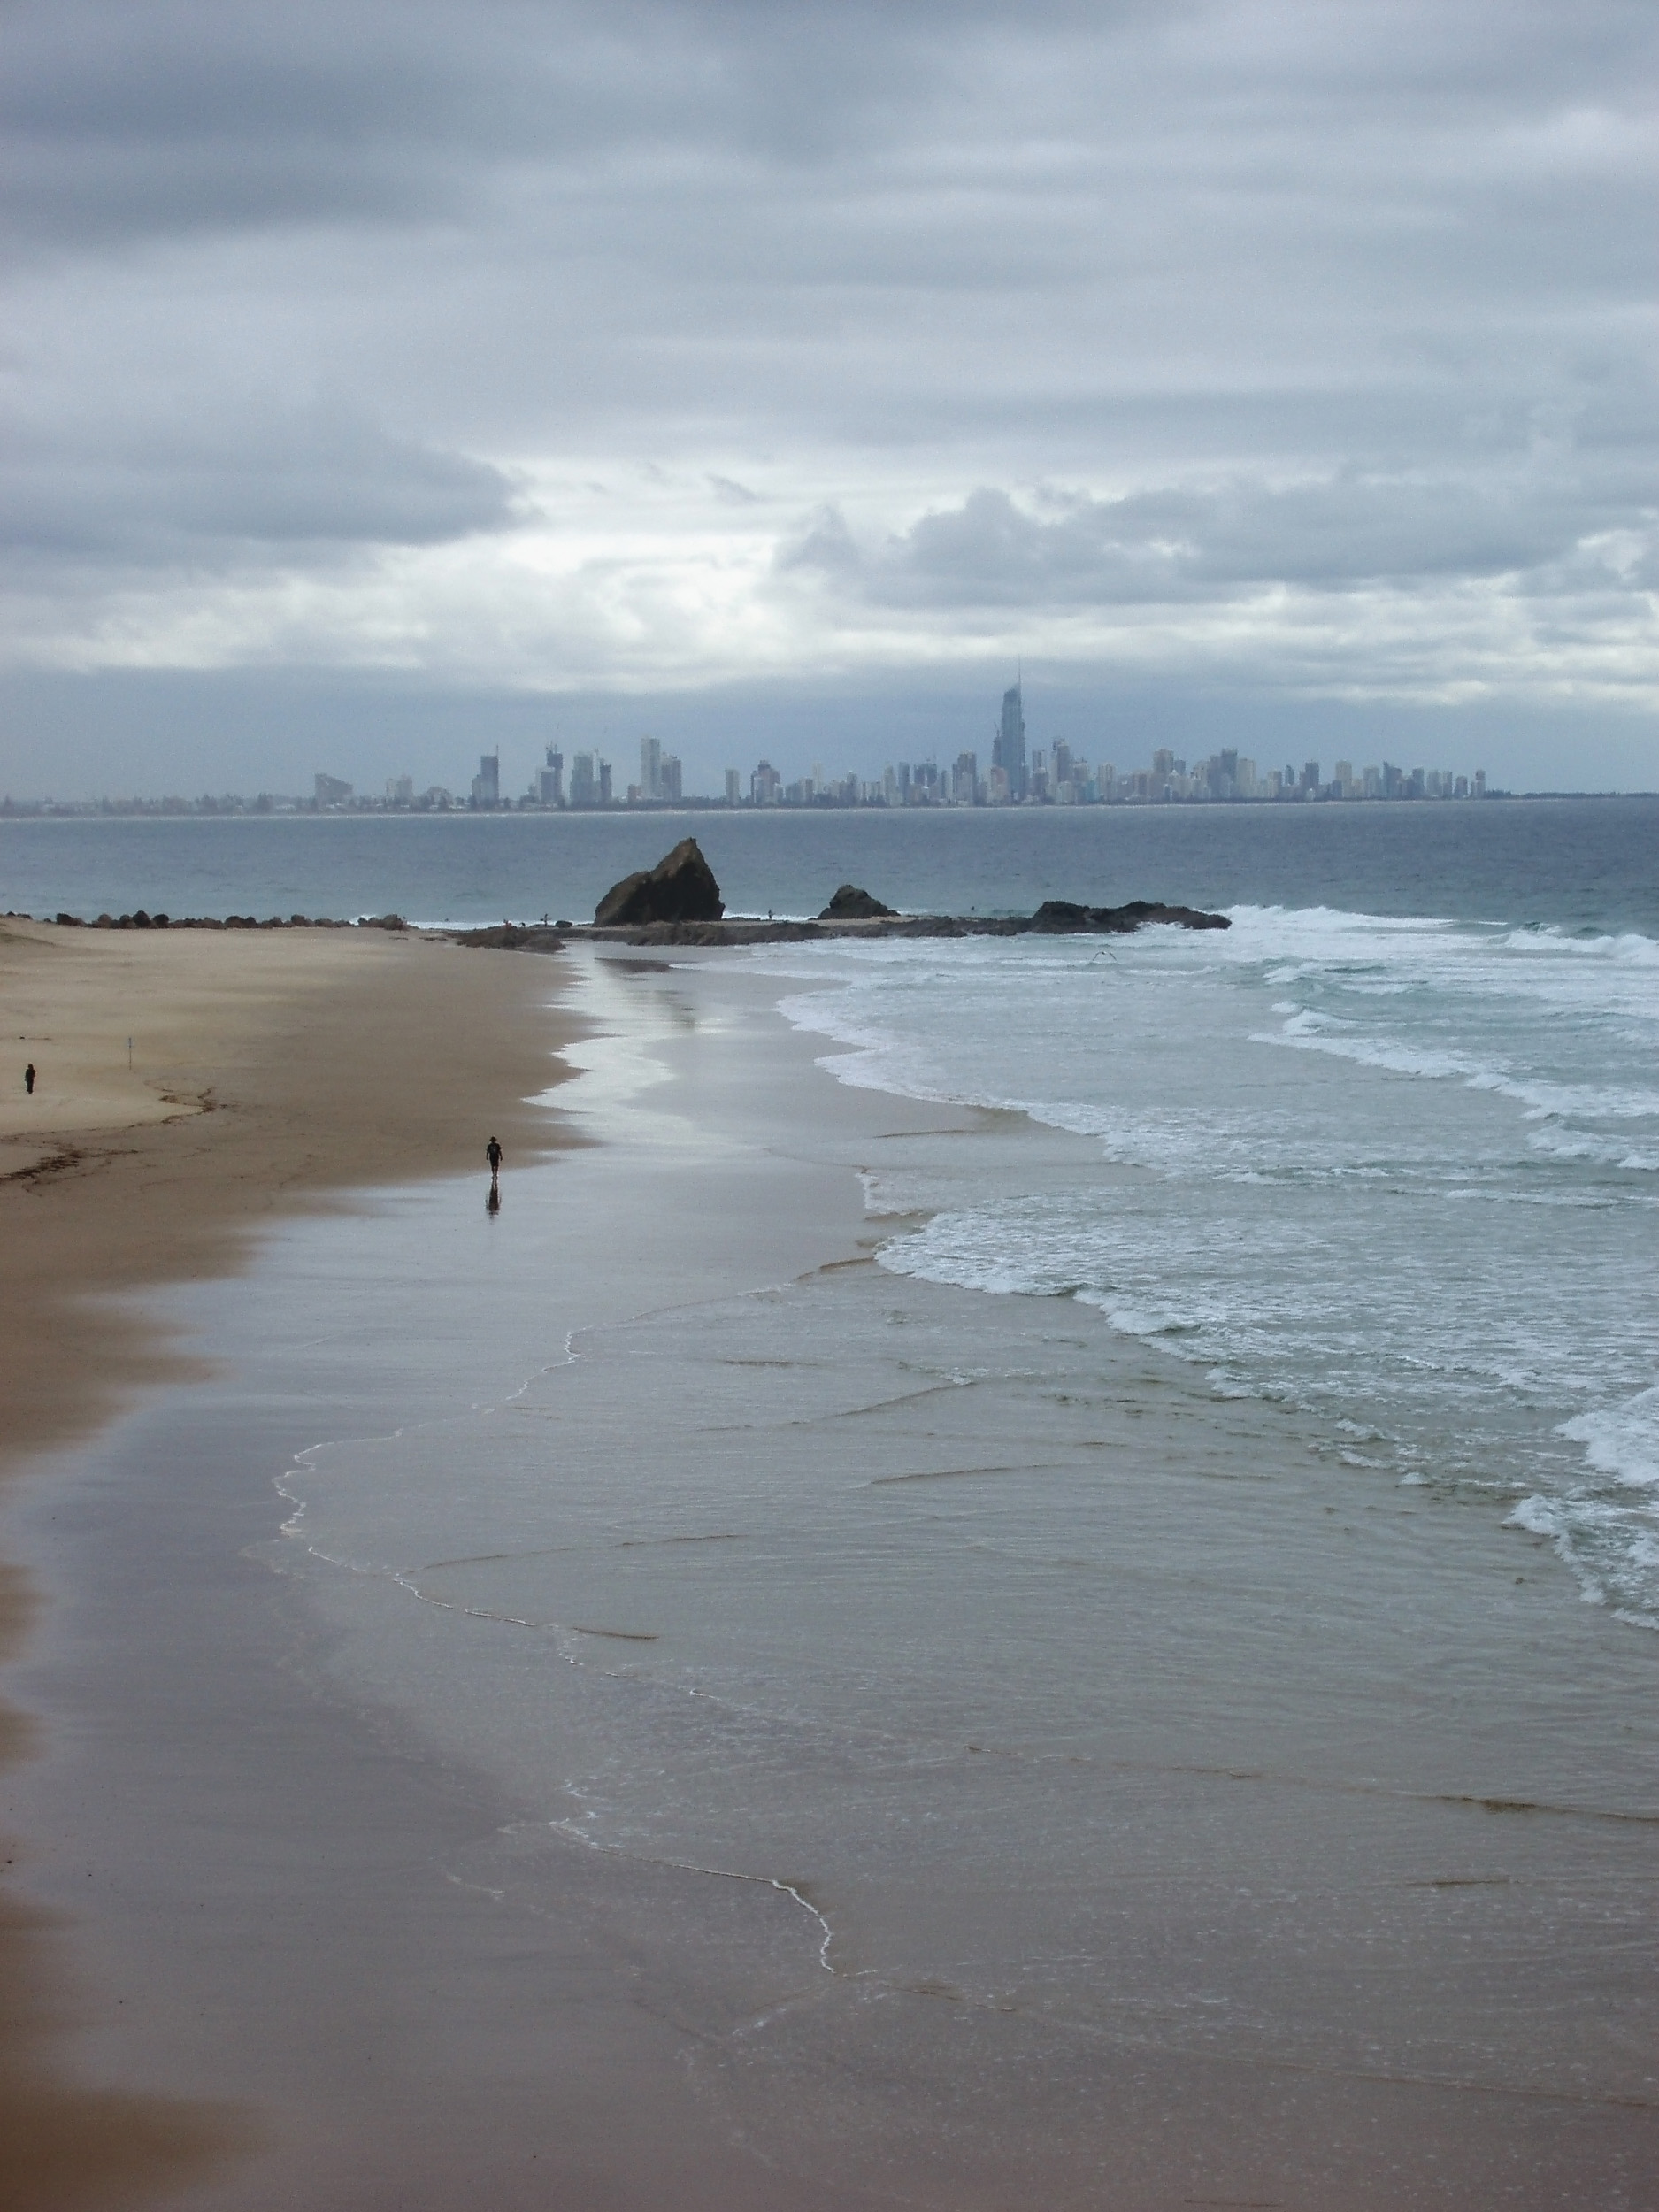 gold coast skyline on a stormy day